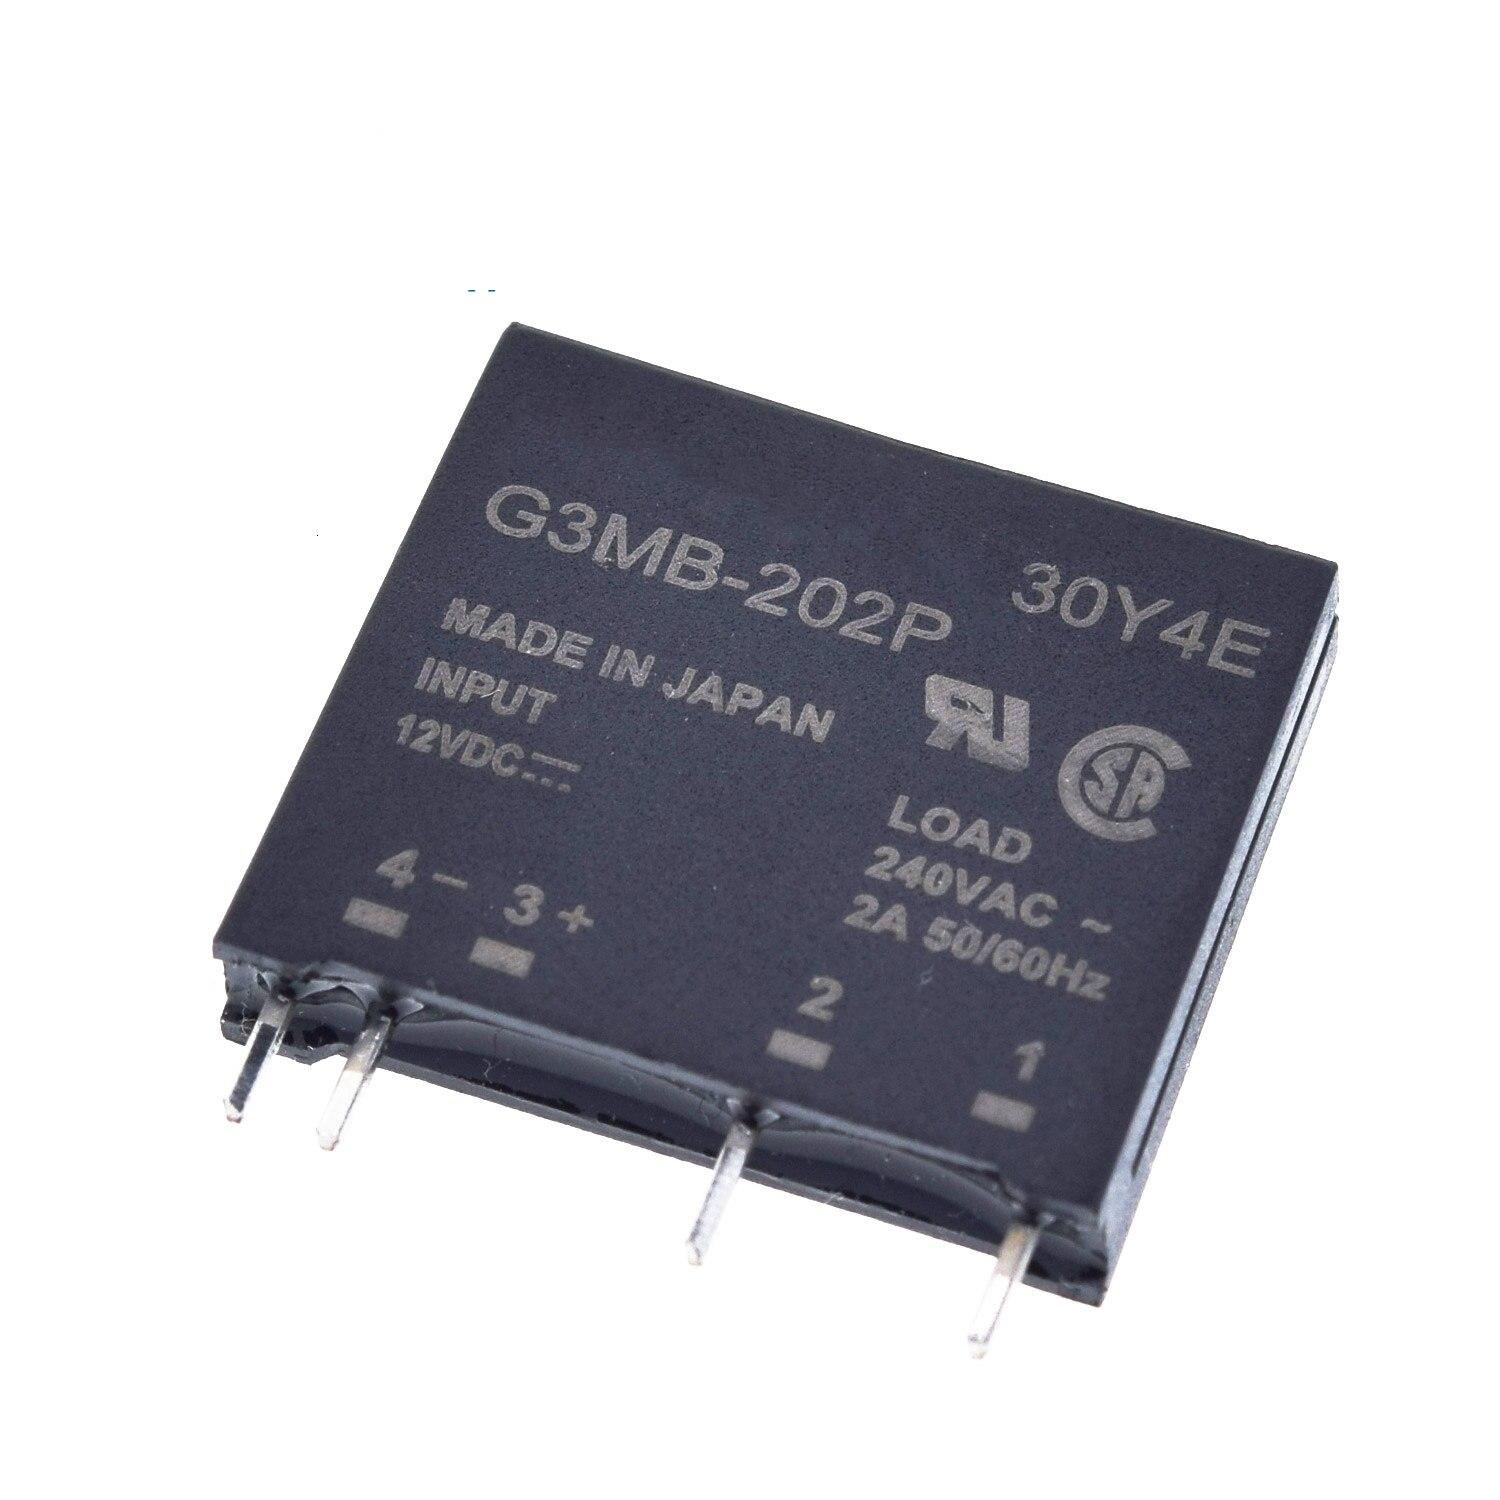 Solid State Relay G3MB-202P DC-AC PCB SSR In 5V 12V 24VDC Out 240V AC 2A